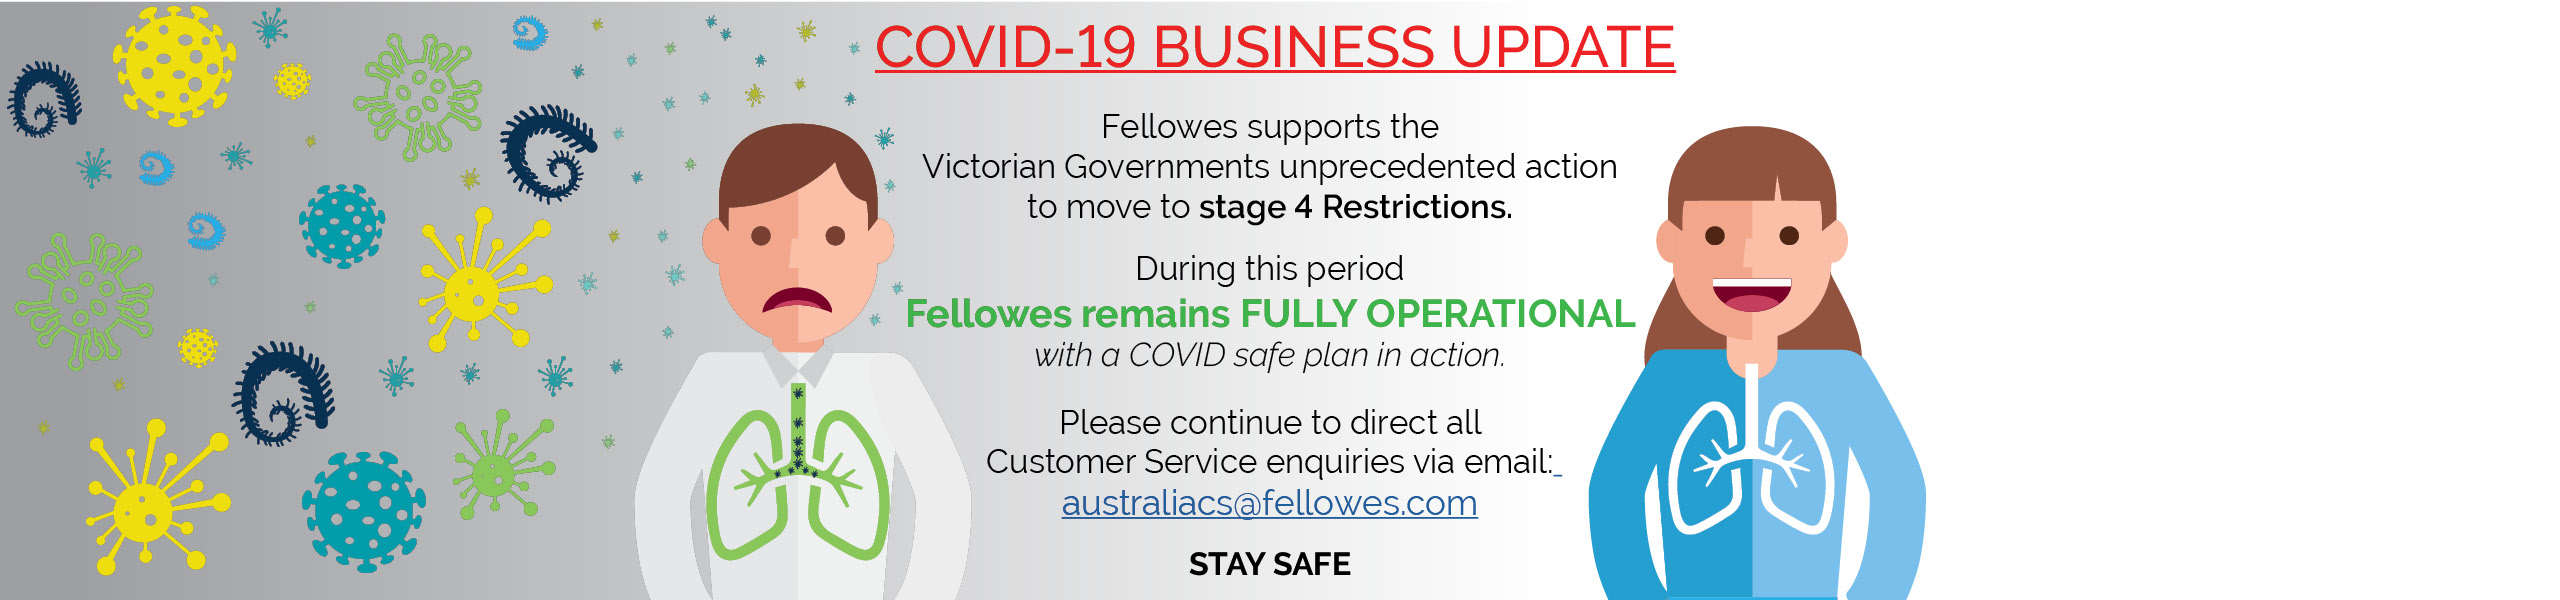 Get the Latest Business Update on COVID-19